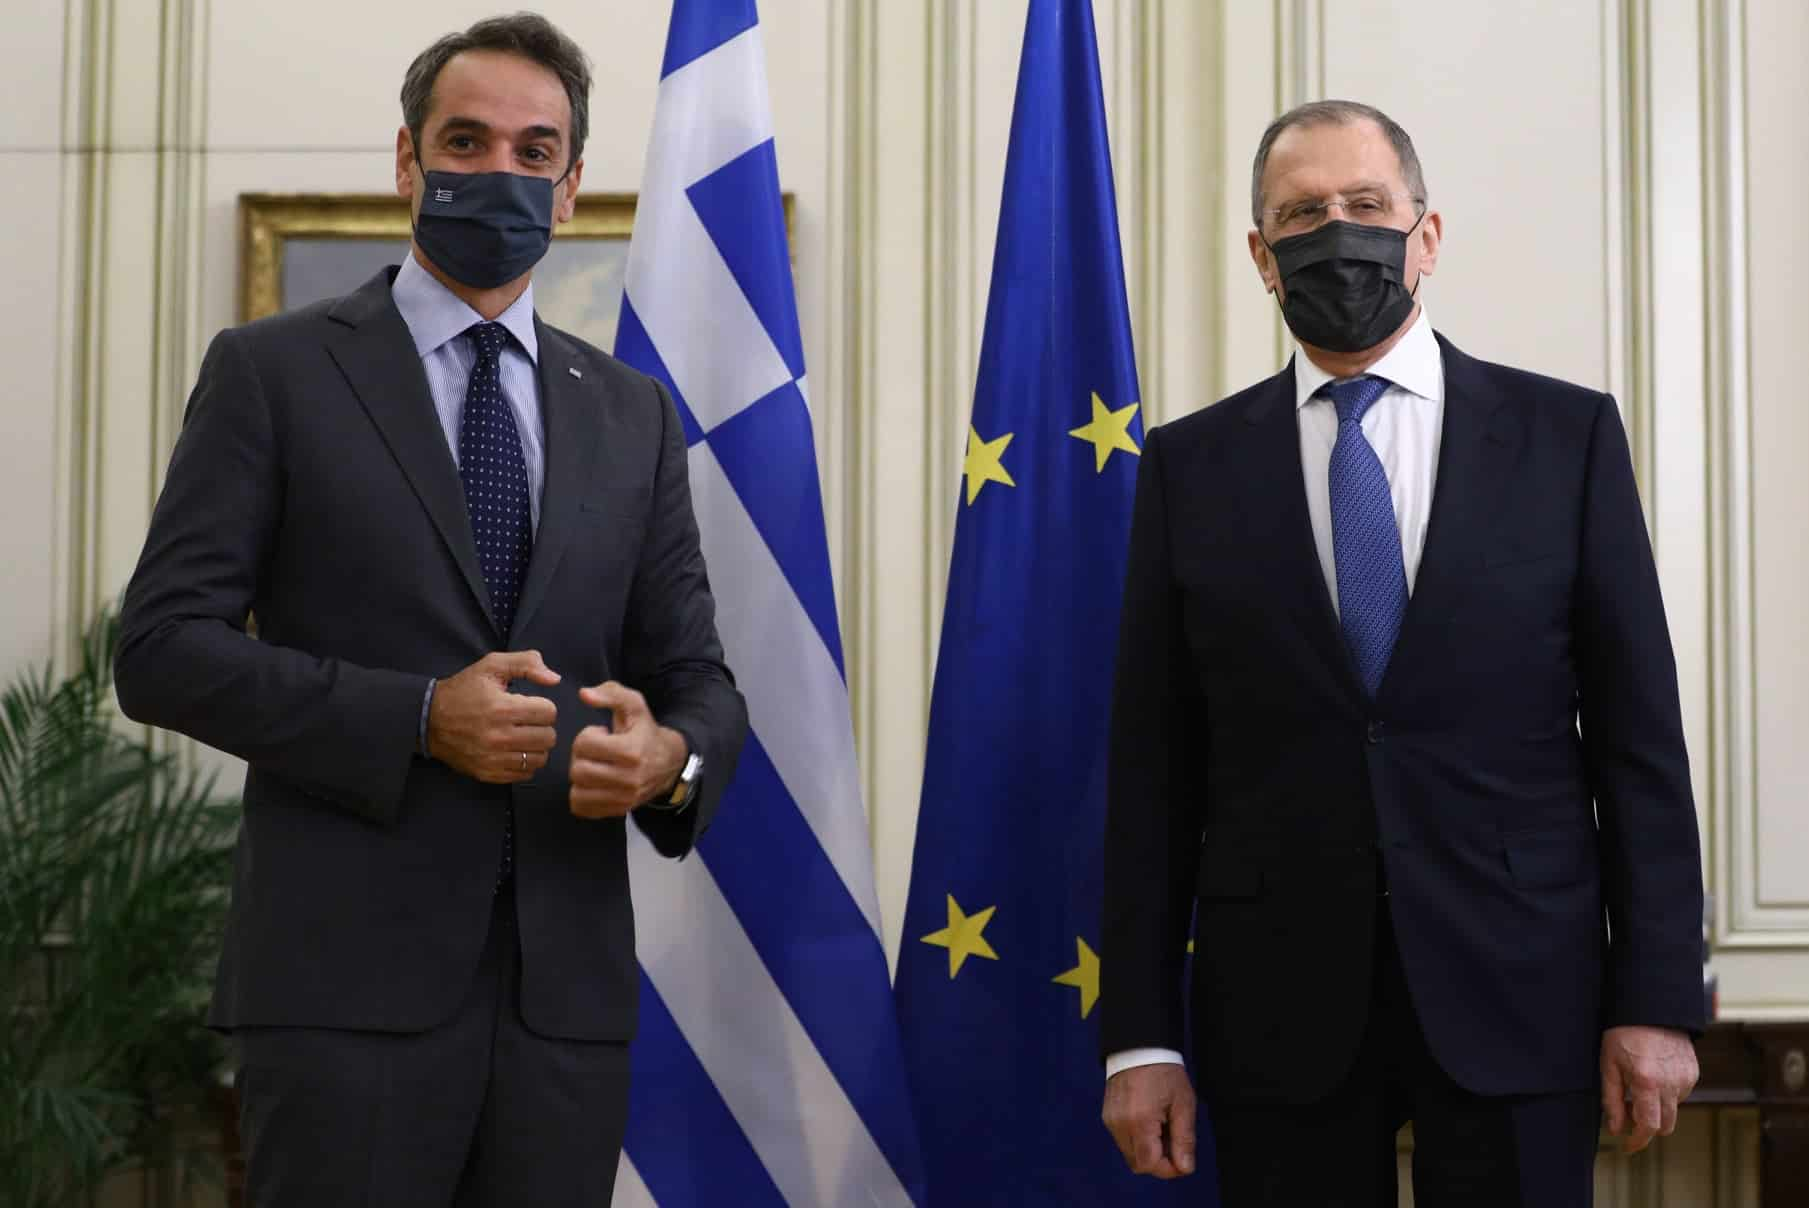 Greek Prime Minister Kyriakos Mitsotakis and Russian Foreign Minister Sergey Lavrov.